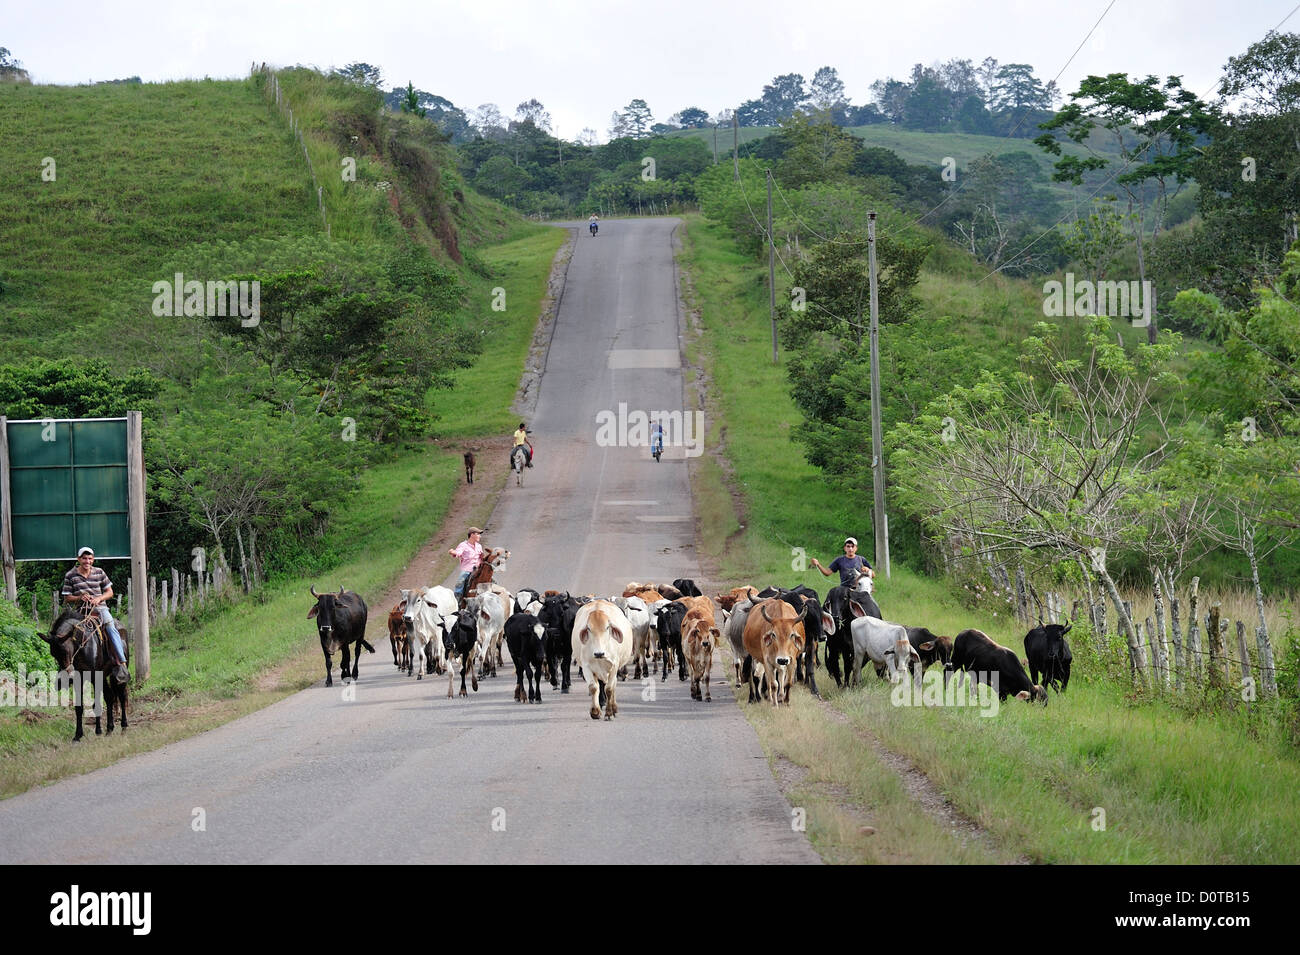 Cows, street, San Jeronimo, Central America, Honduras, Cattle drive, rural, herding, - Stock Image